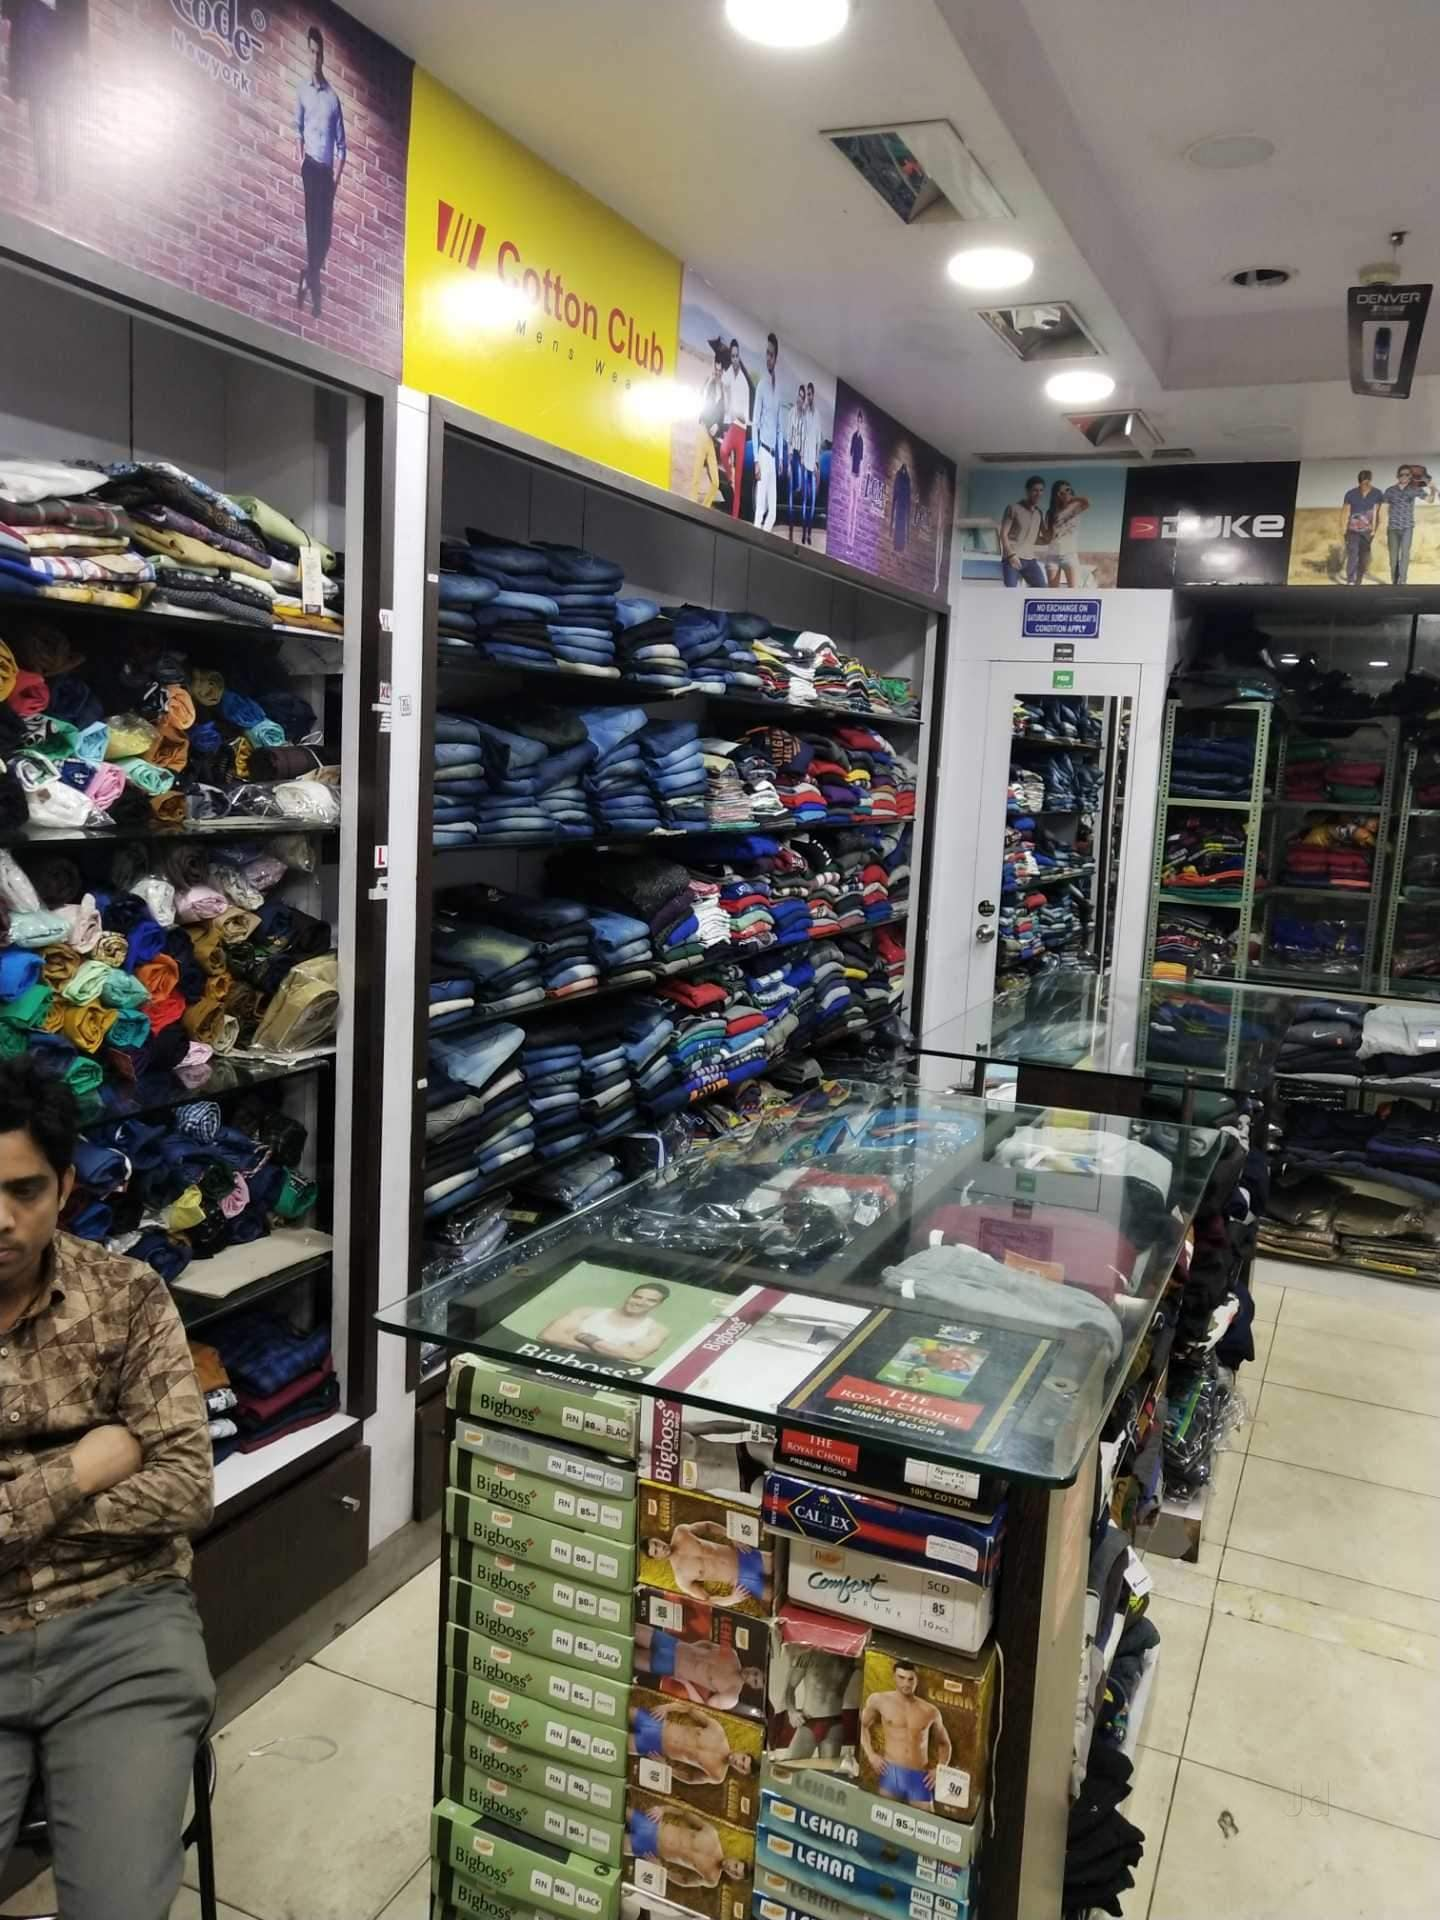 56e7cdf89f4 Top 100 Gents Readymade Garment Retailers in Jaipur - Best Readymade ...